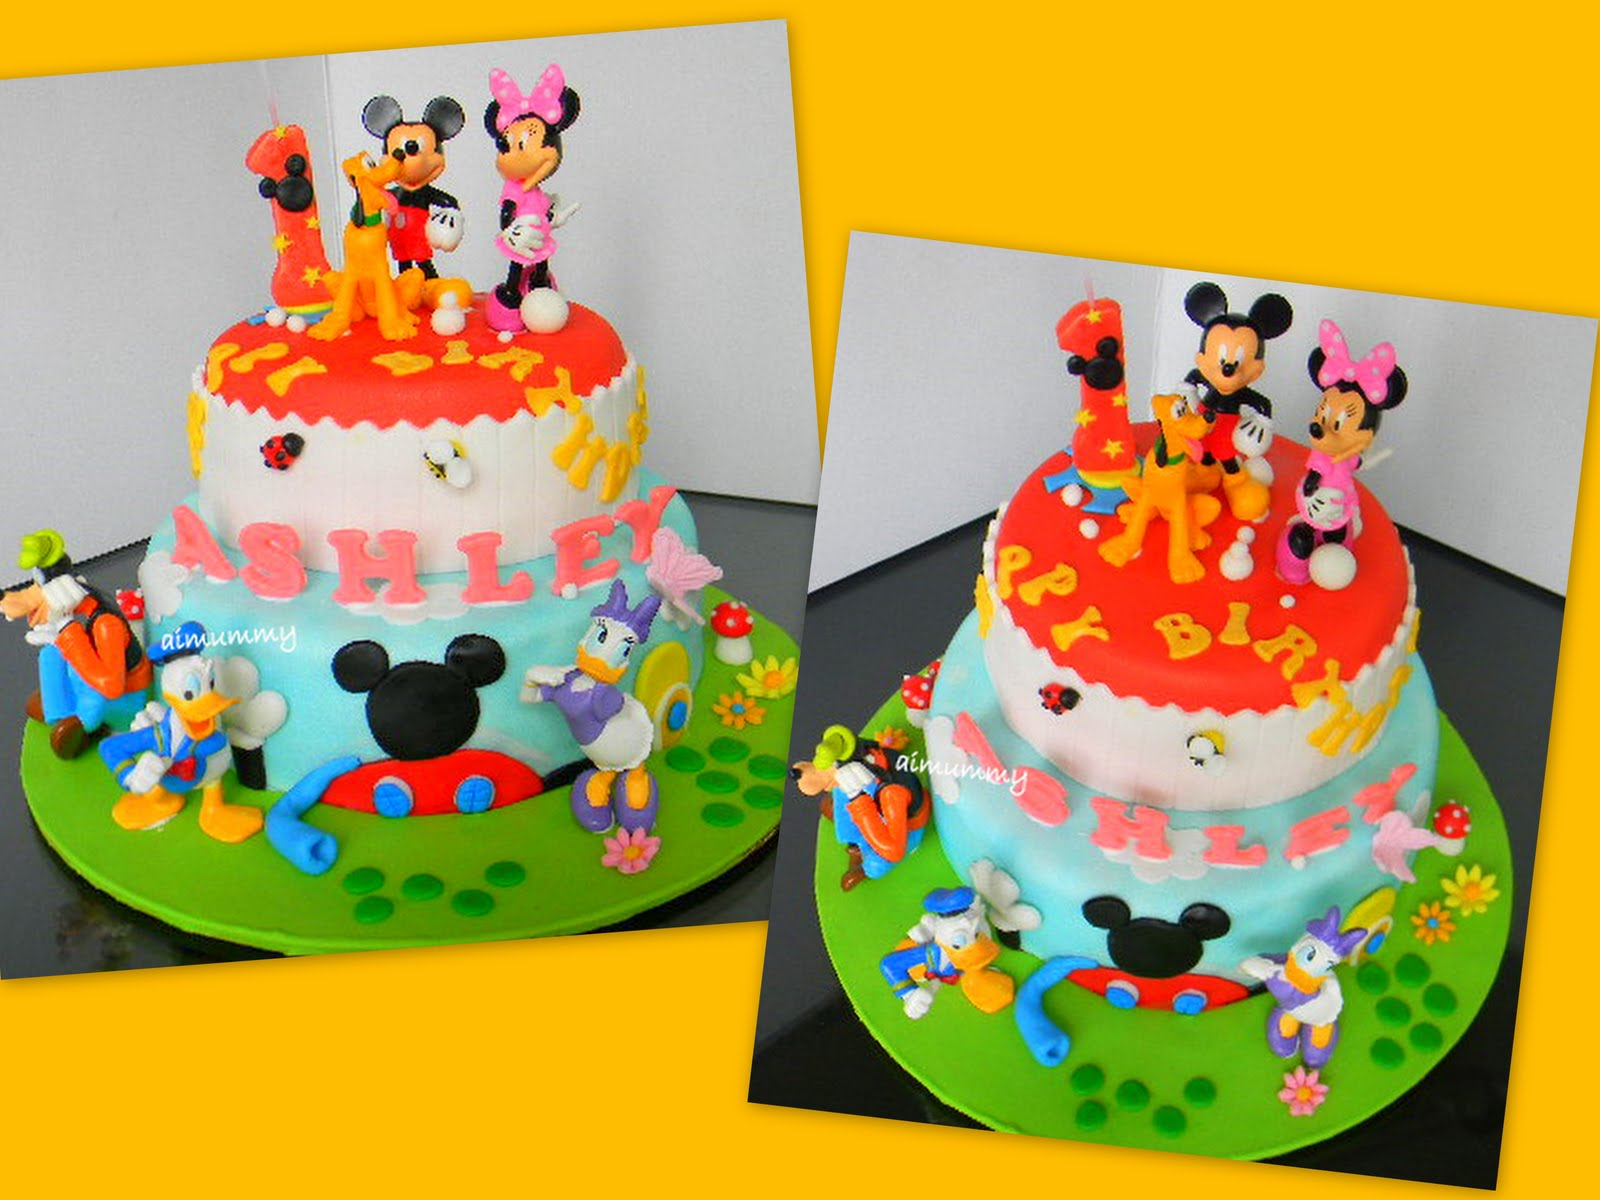 Goldilocks Cake Design Mickey Mouse Dmost for